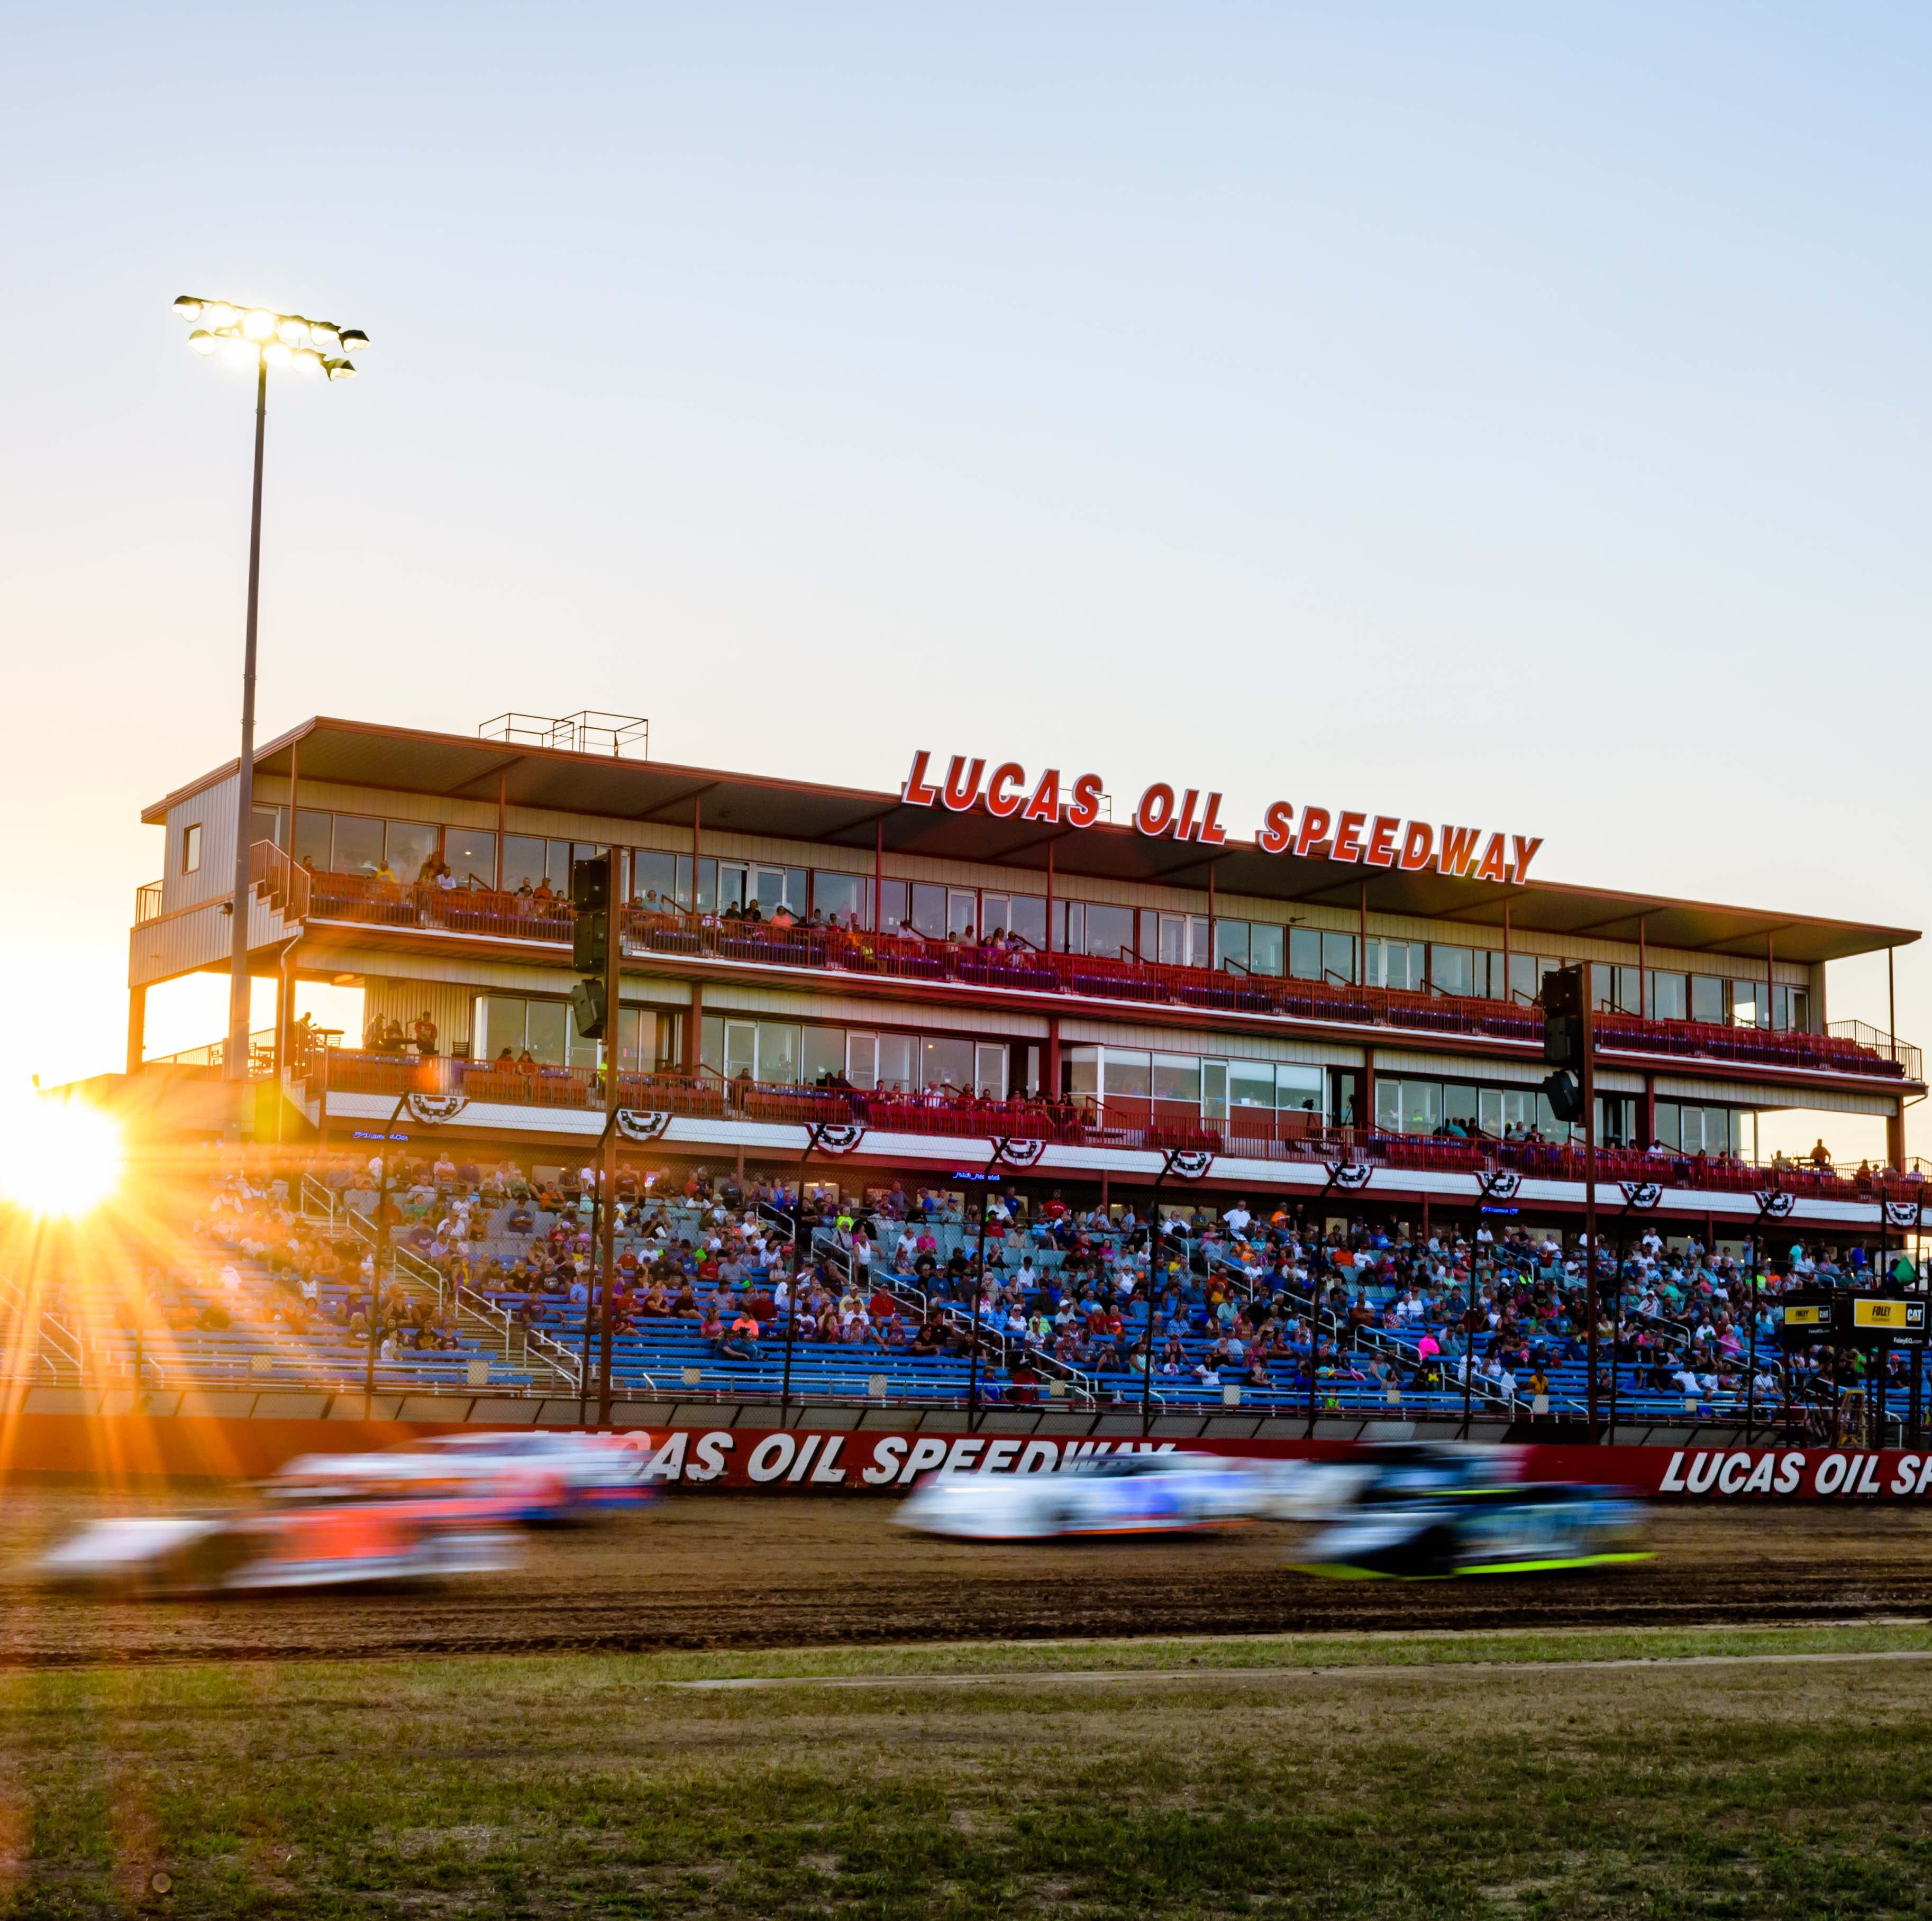 Lucas Oil Speedway announces plans to reopen after severe storms damaged complex